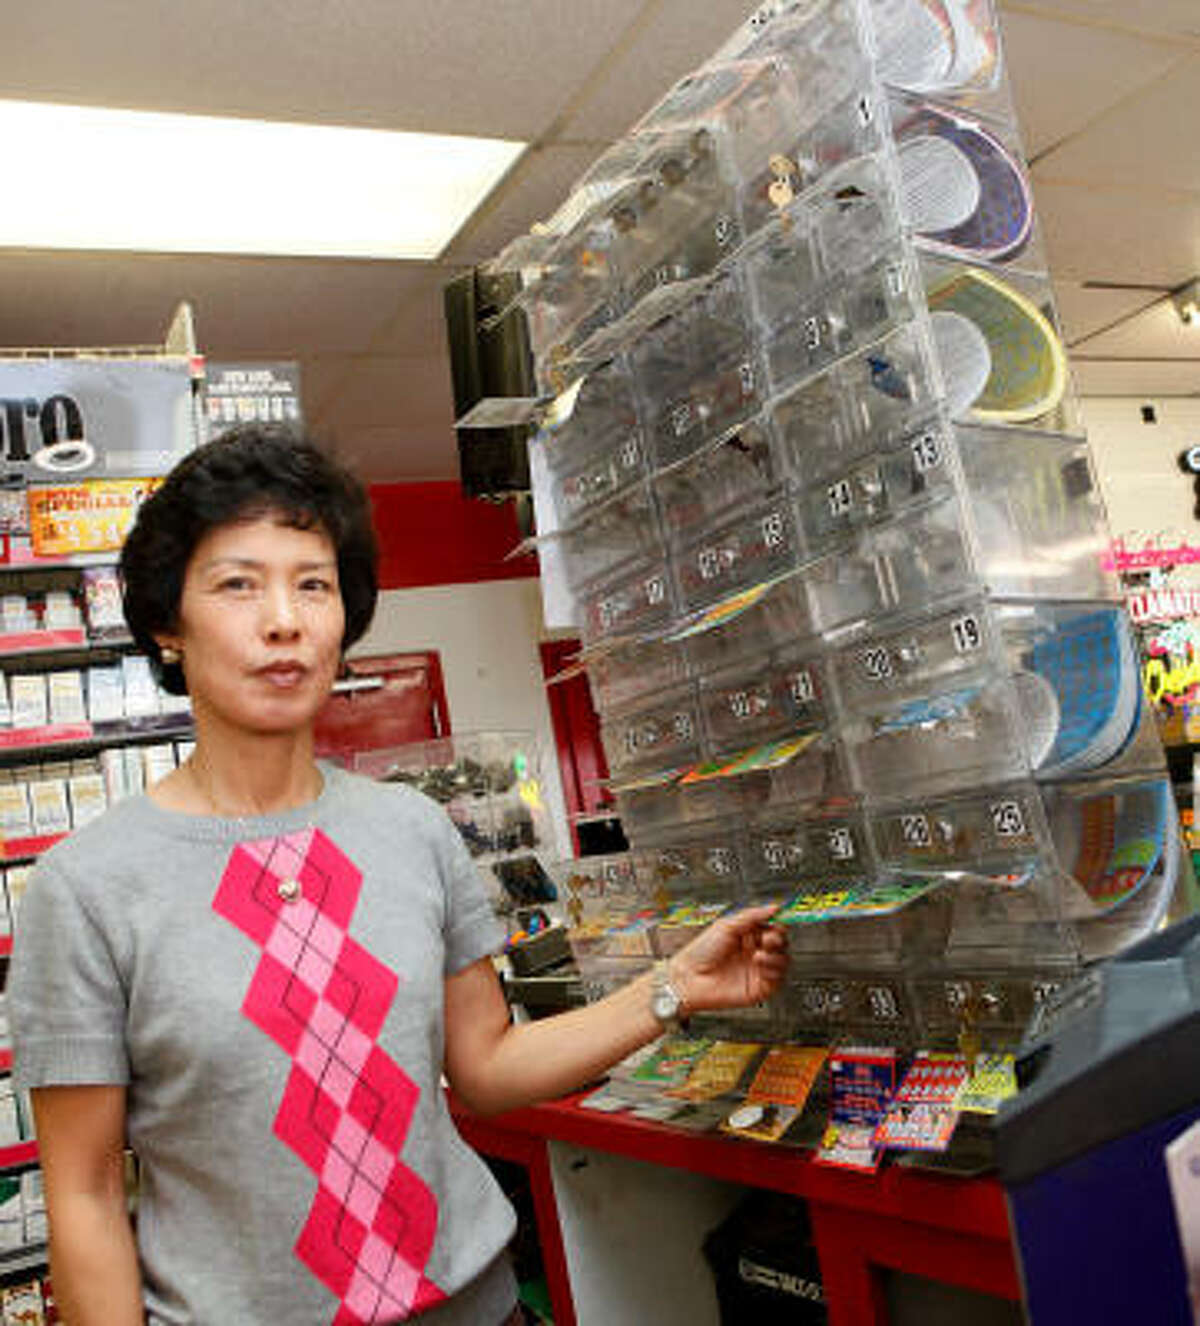 Sun Bae, owner of the Times Market, stands next to the lottery tickets at her store in Bishop.